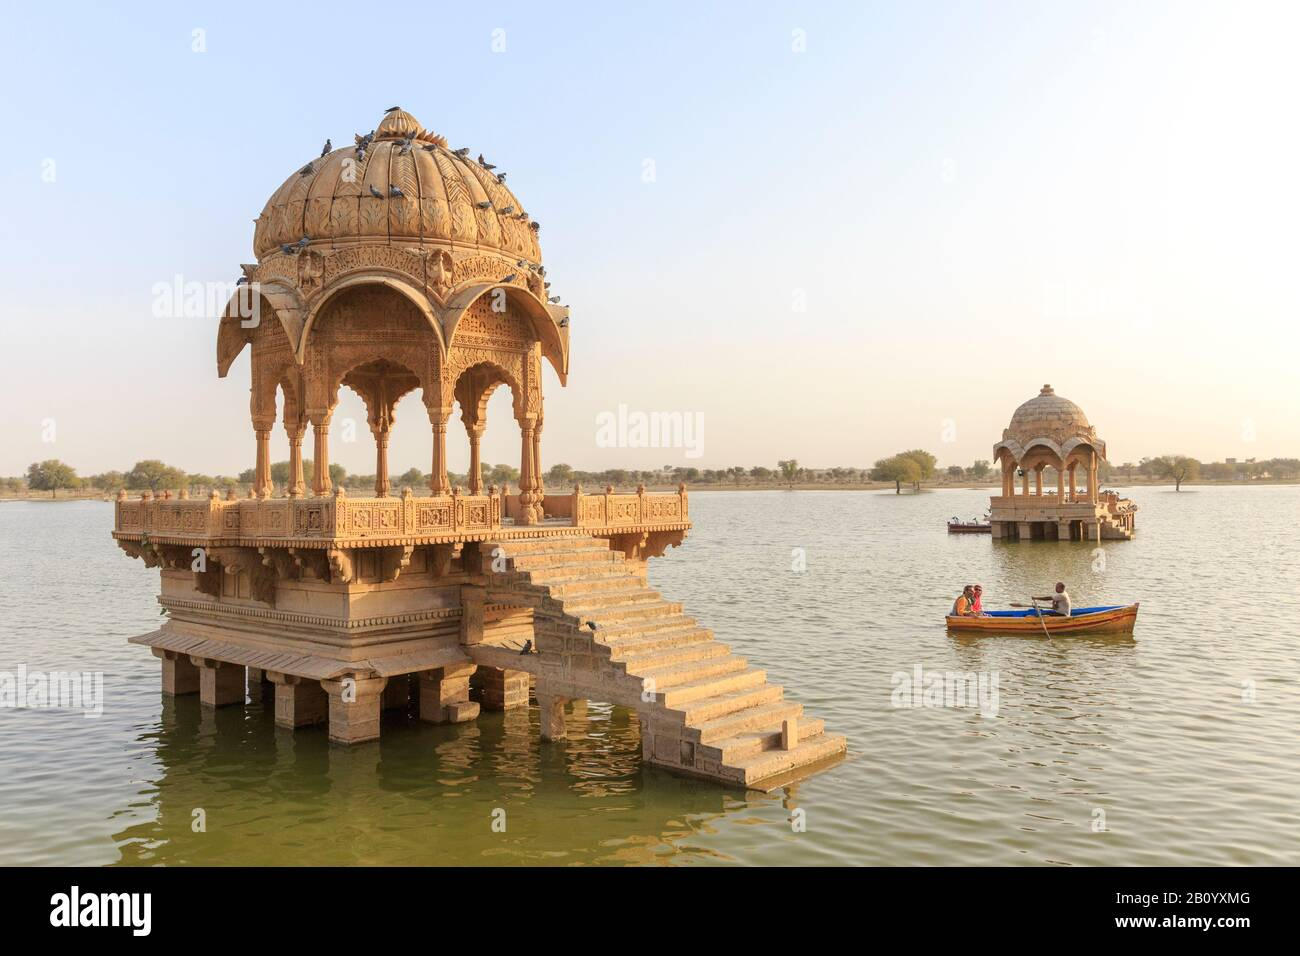 Gadisar Lake, Gadi Sagar, Jaisalmer, Rajasthan, India - Stock Photo